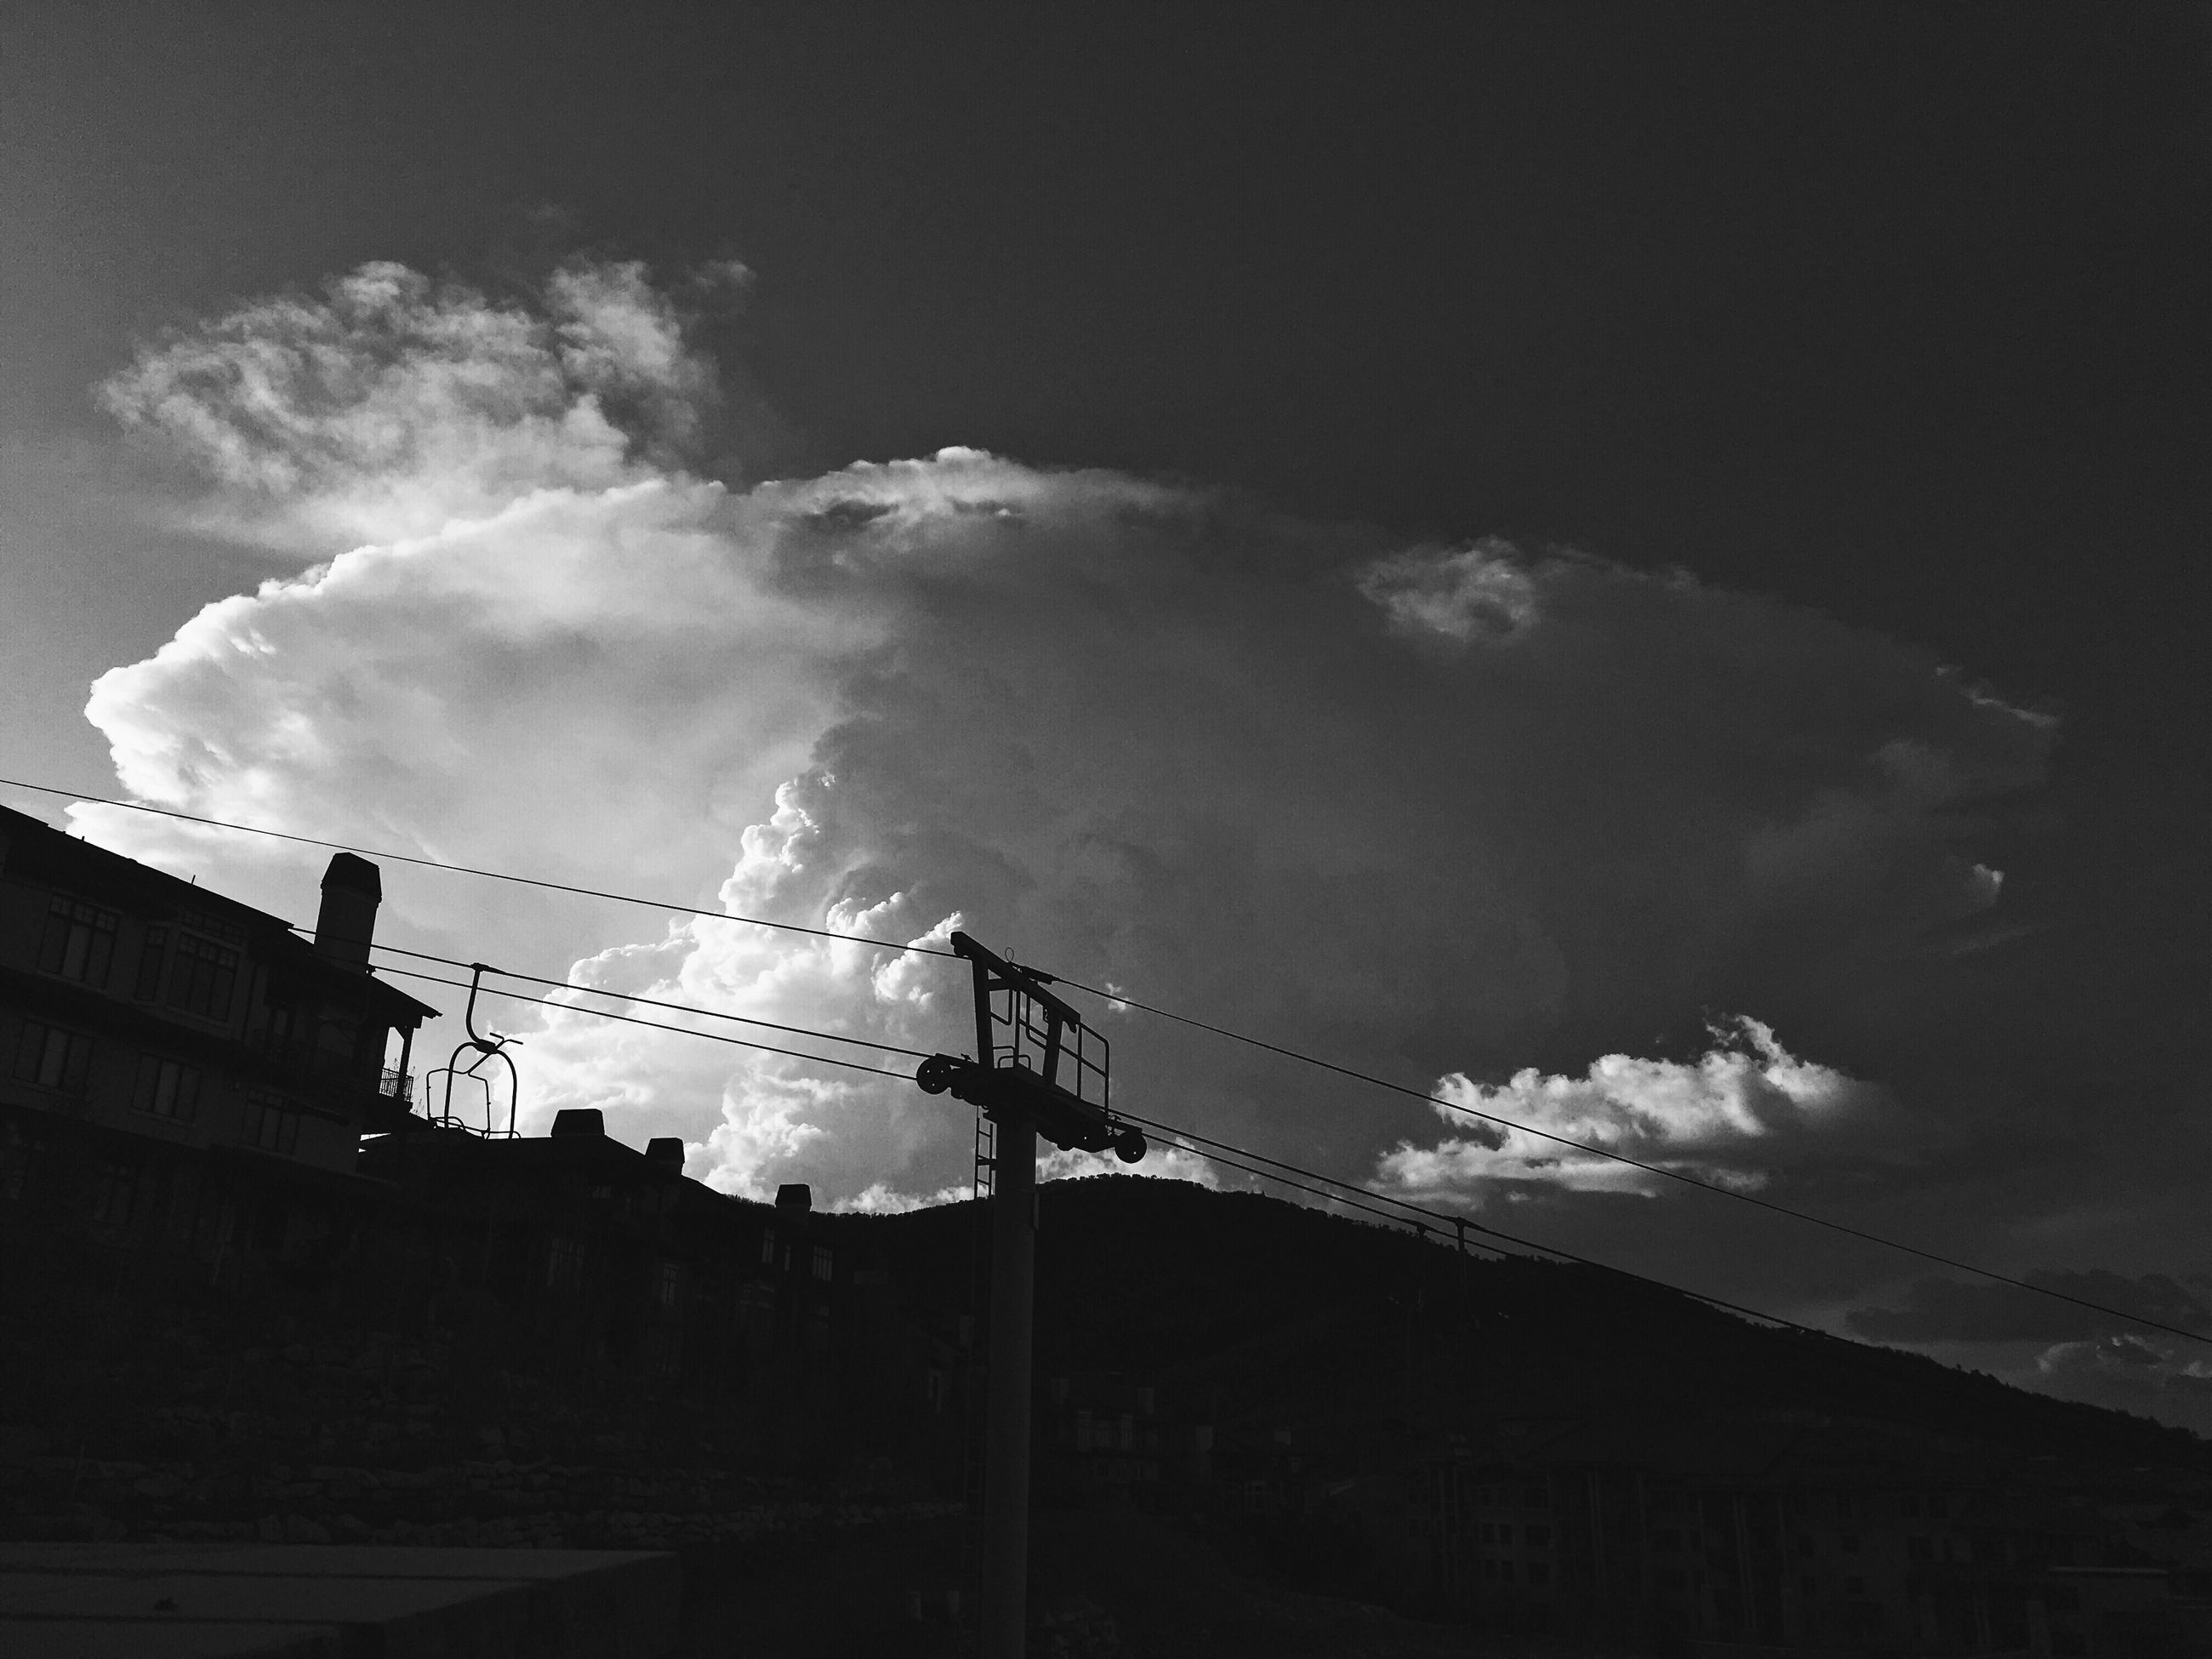 sky, cloud - sky, low angle view, connection, cable, silhouette, outdoors, no people, built structure, electricity, architecture, day, electricity pylon, building exterior, factory, nature, telephone line